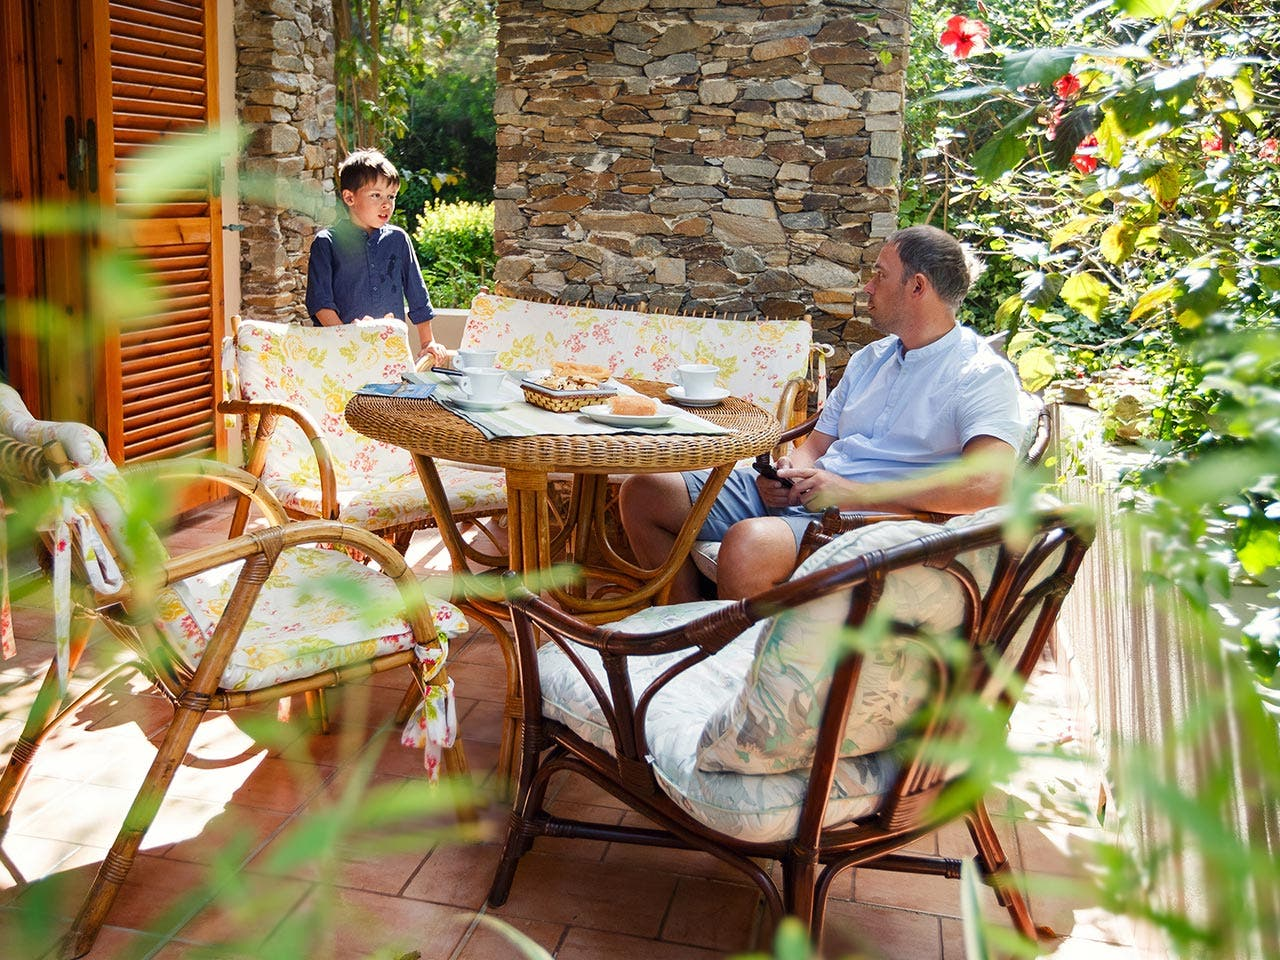 Patio furniture | Levranii/Shutterstock.com